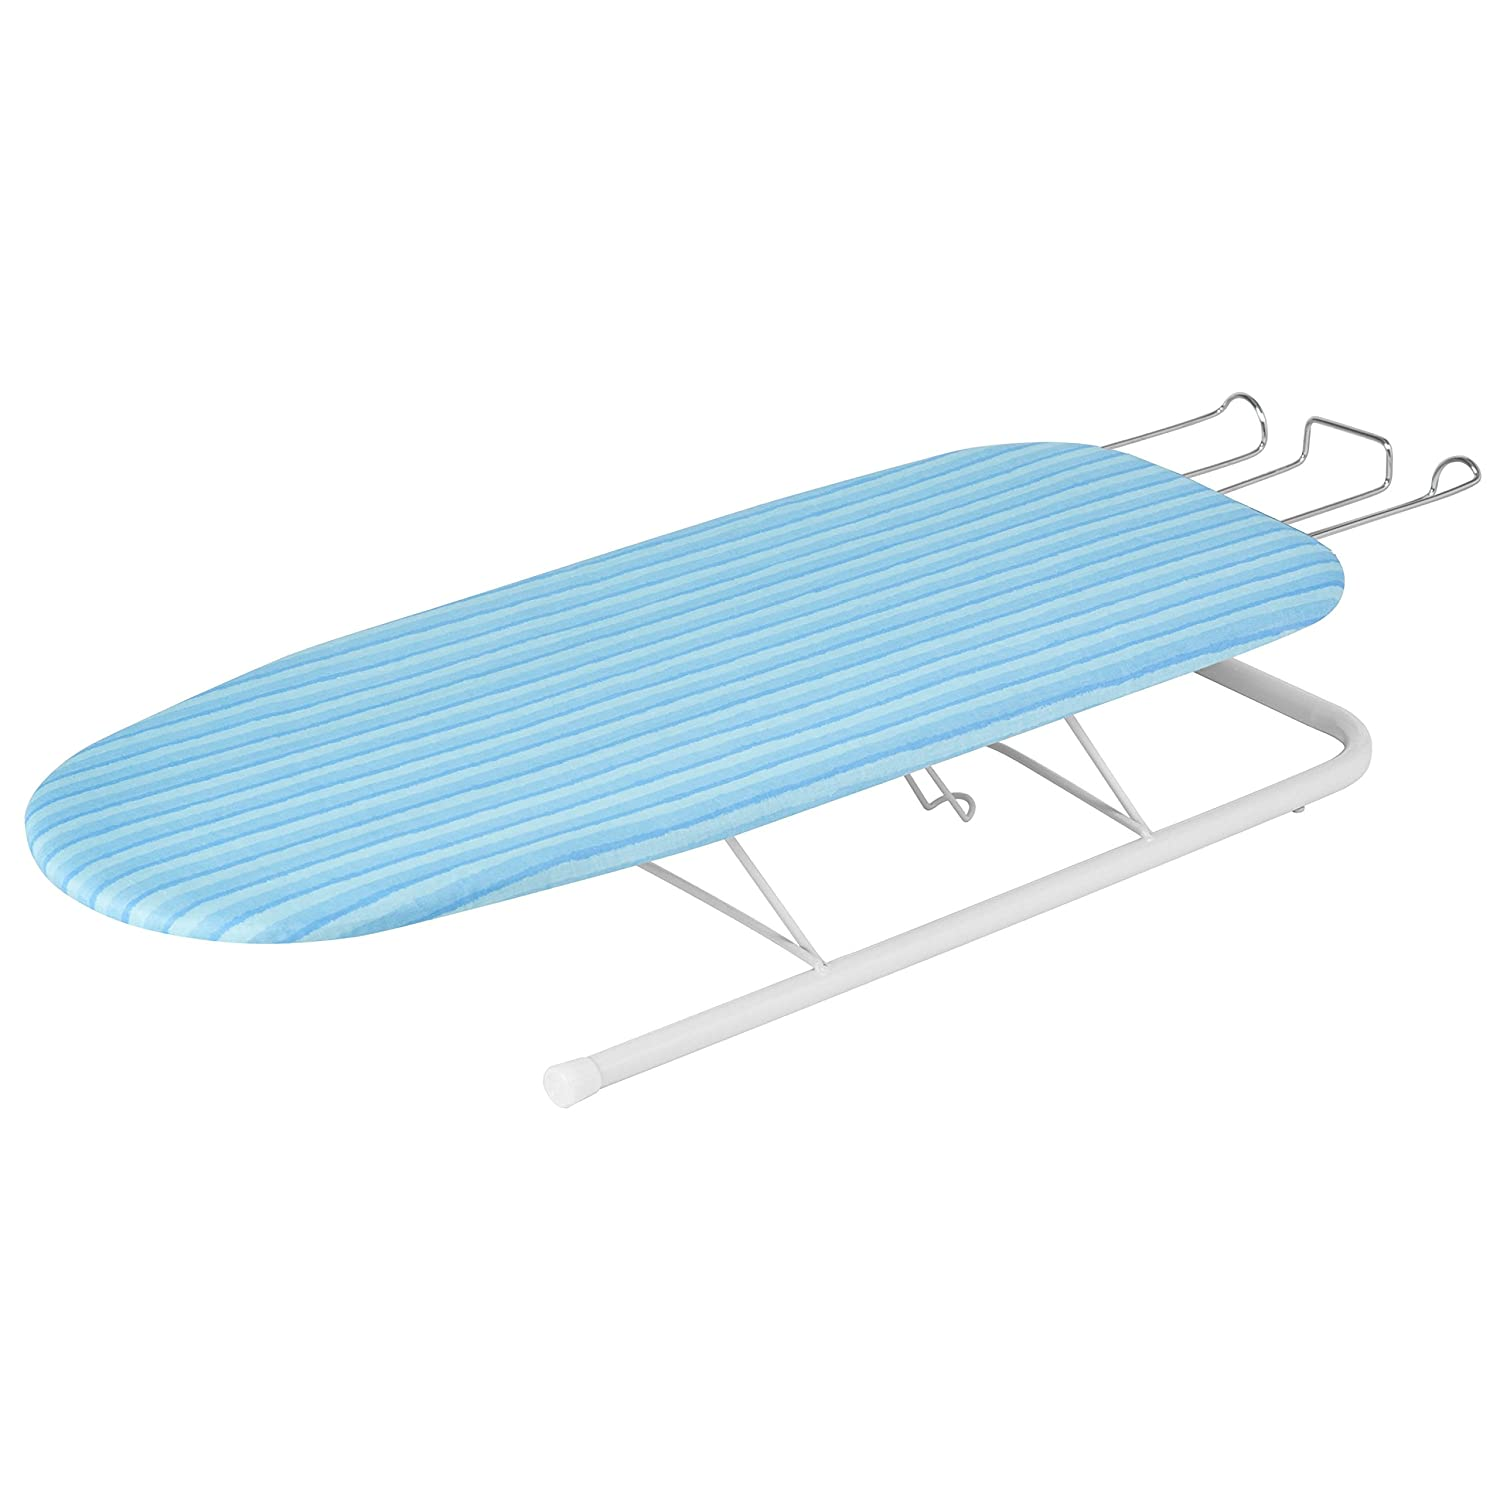 Honey-Can-Do BRD-01292 Folding Tabletop Ironing Board with Iron Rest Honey-Can-Do International